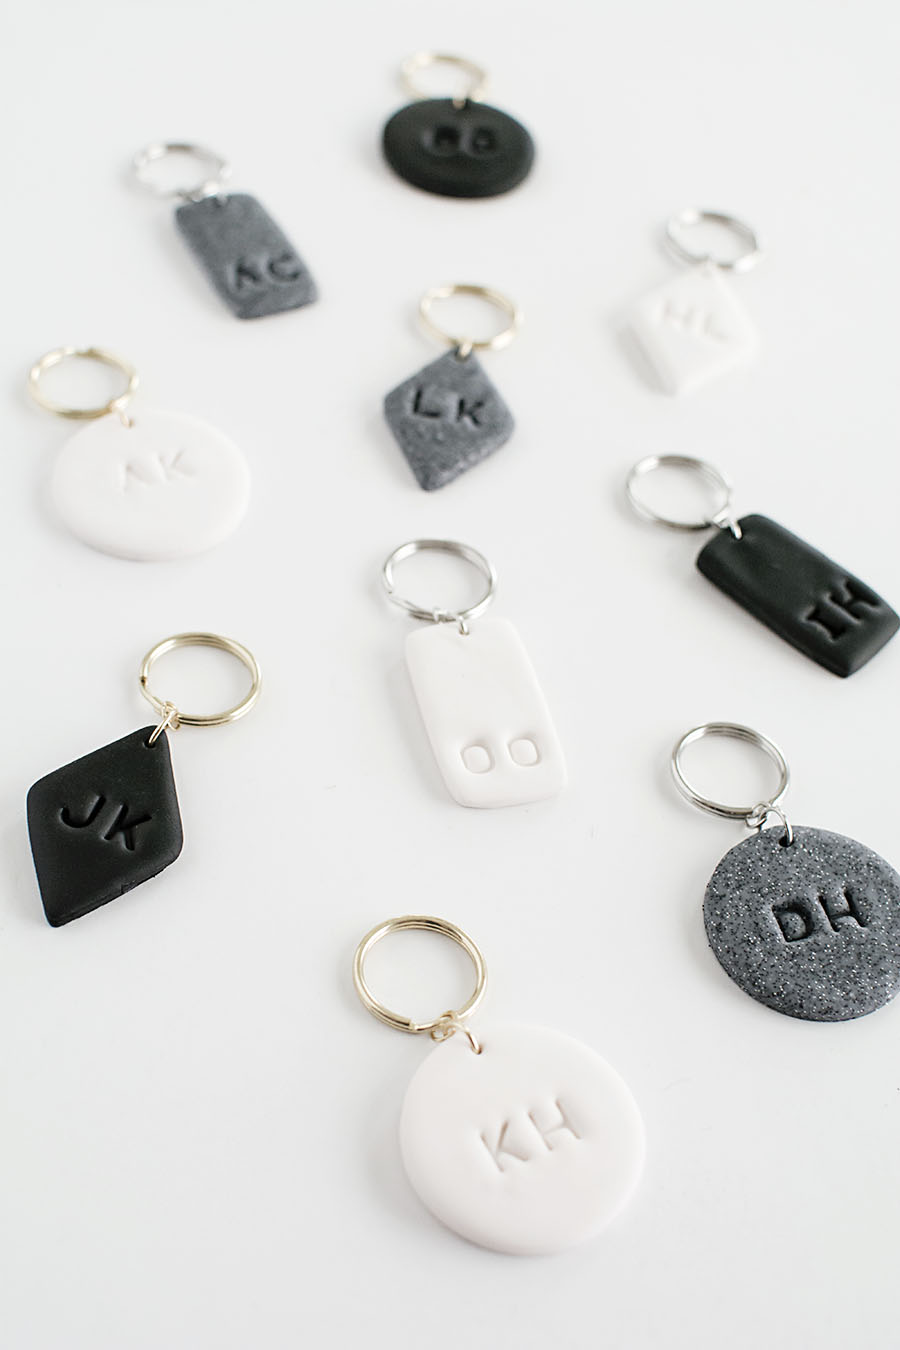 Monogram Clay Keychains DIY